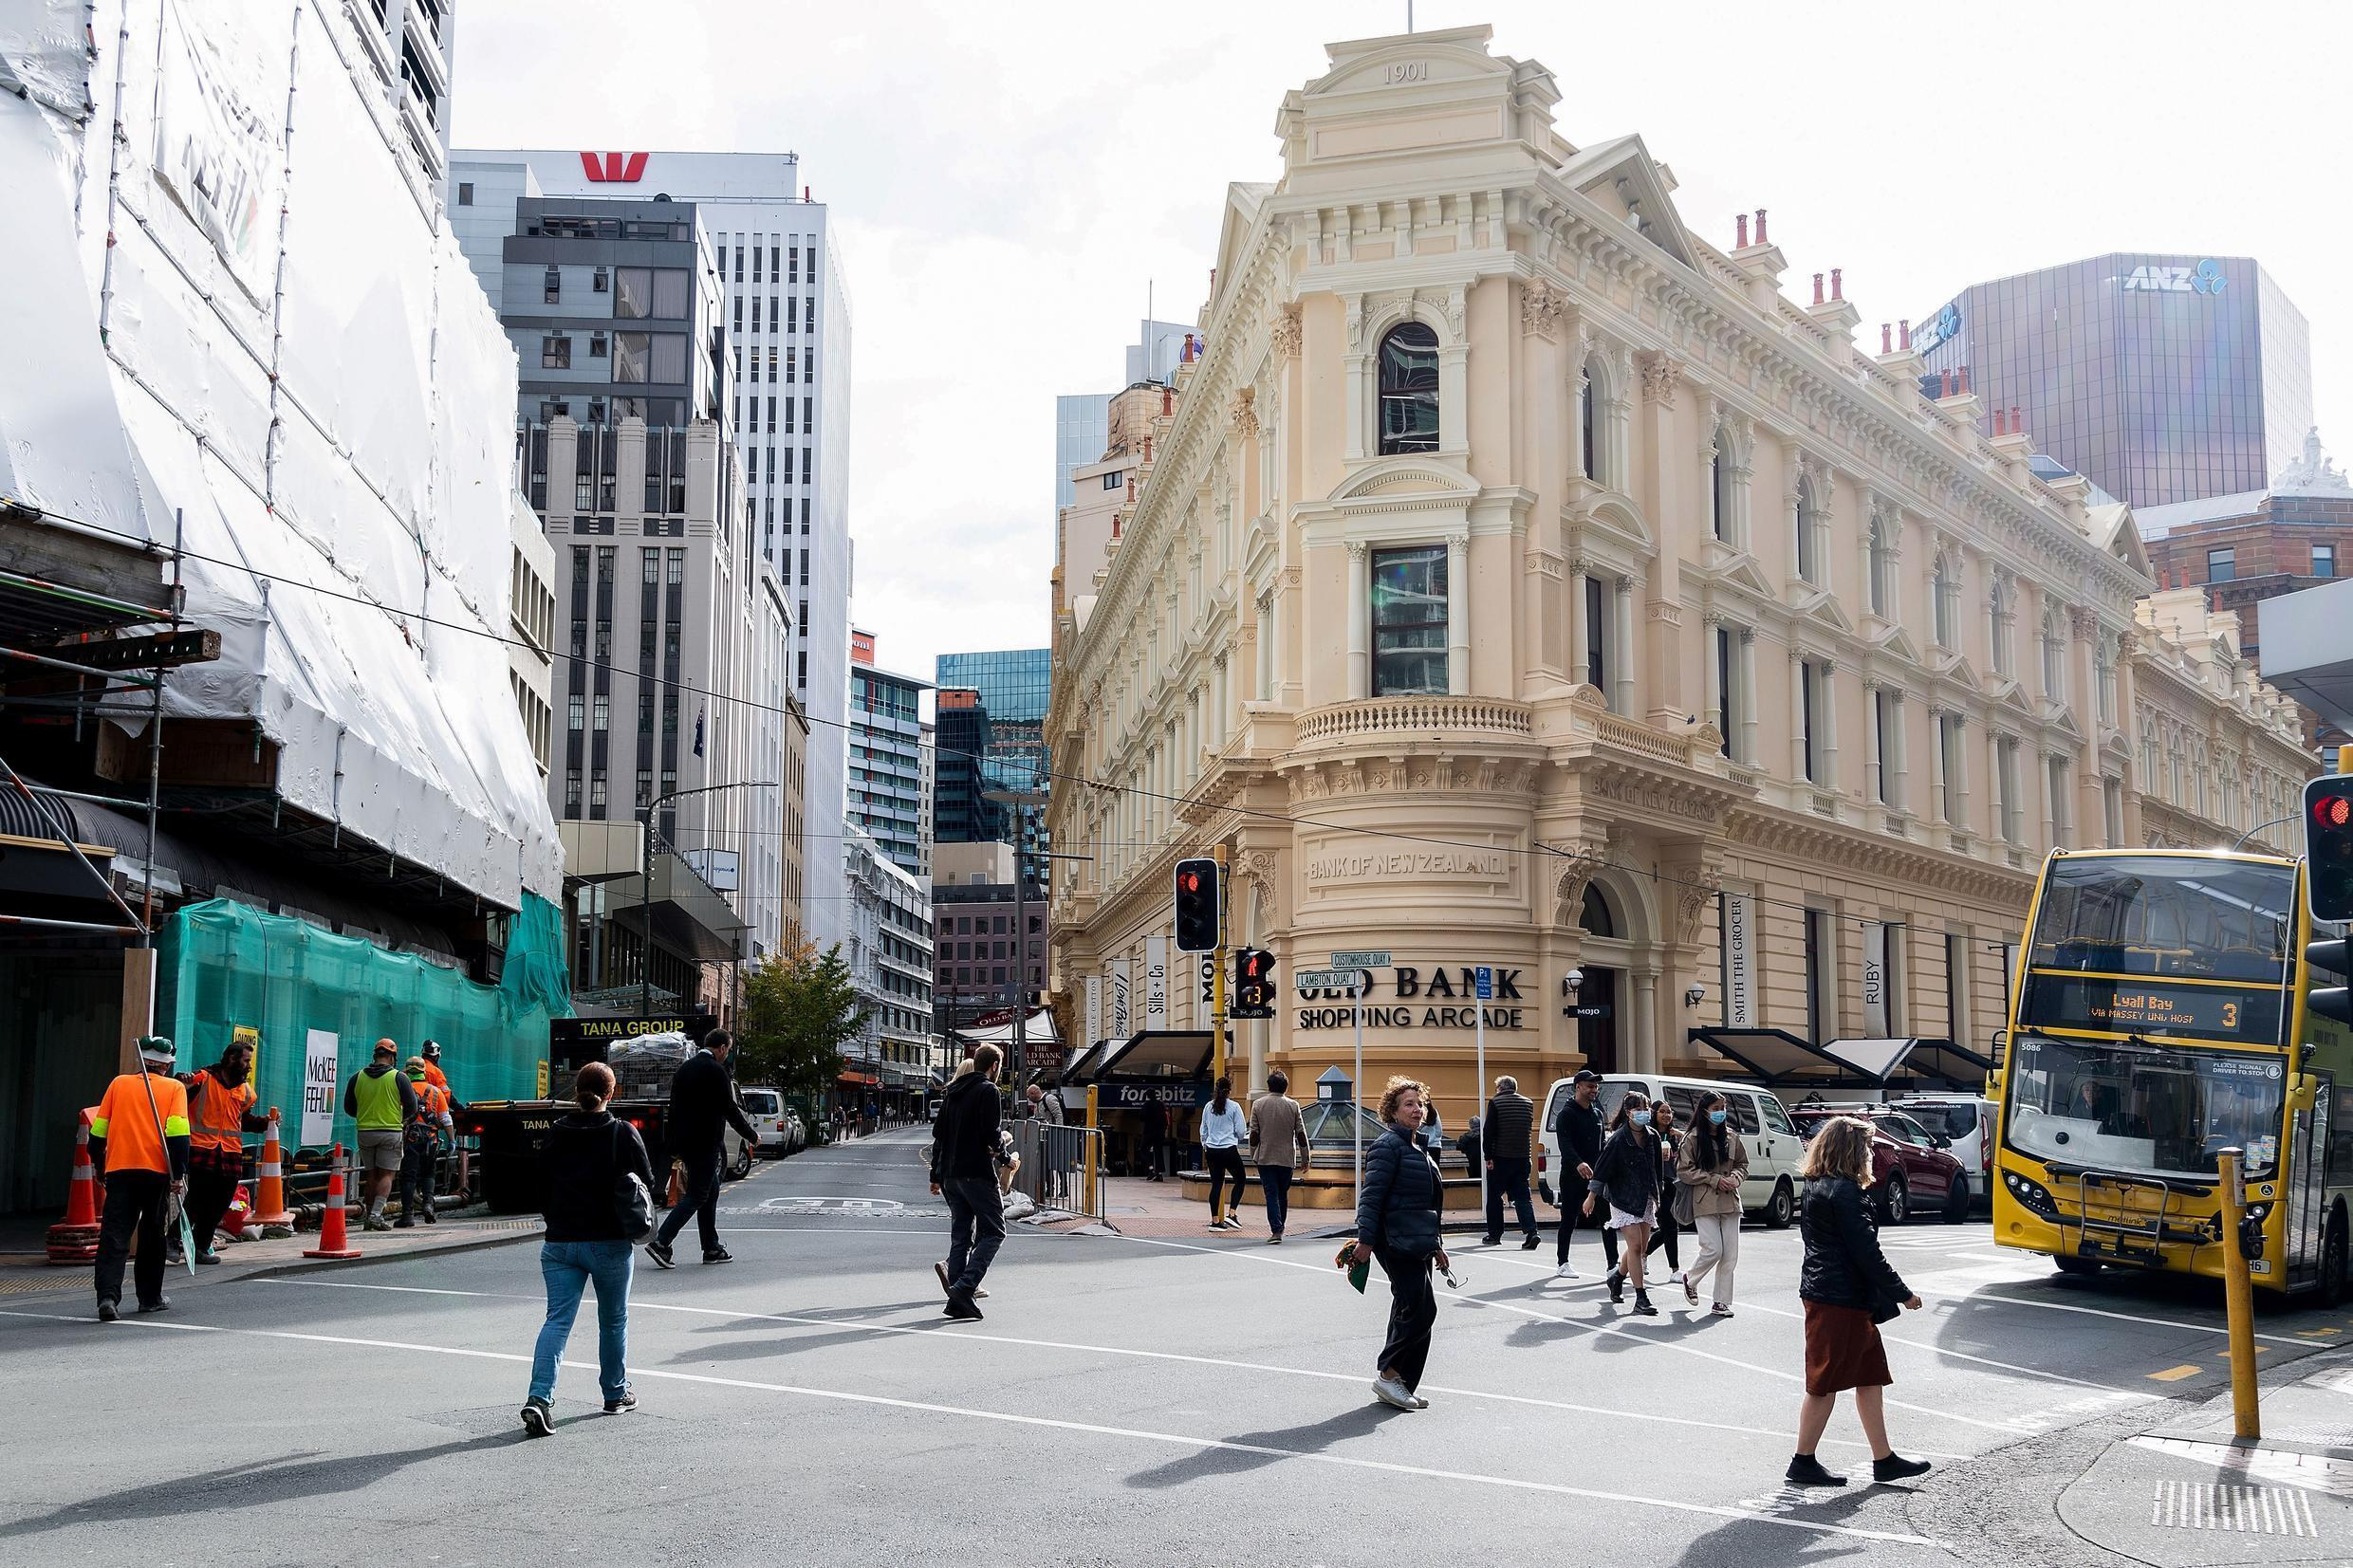 There was sustained shaking from the quake in Wellington